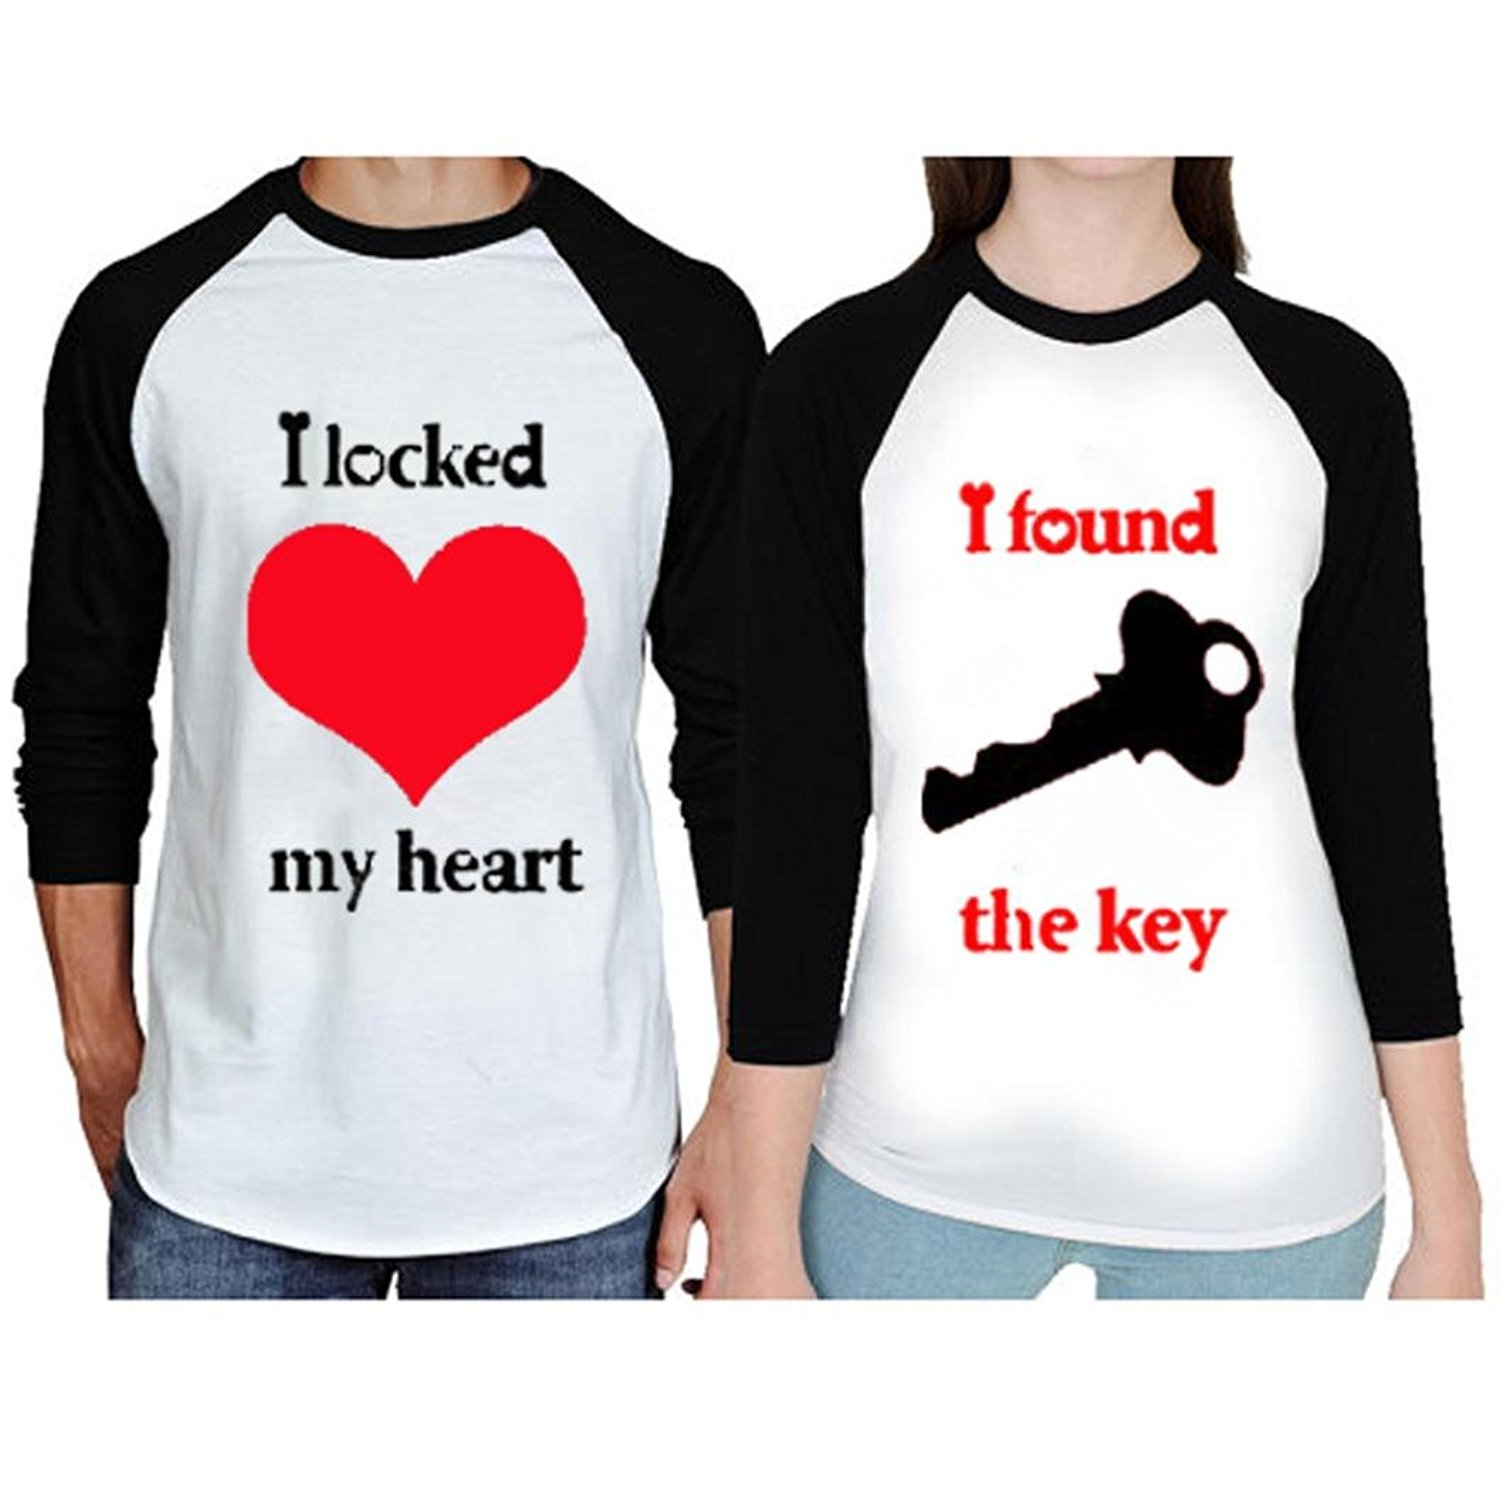 682d0b9b2 Get Quotations · Franterd Matching Couple Shirts - Couple Shirts For him  and Her - Valentine's Day Gift His